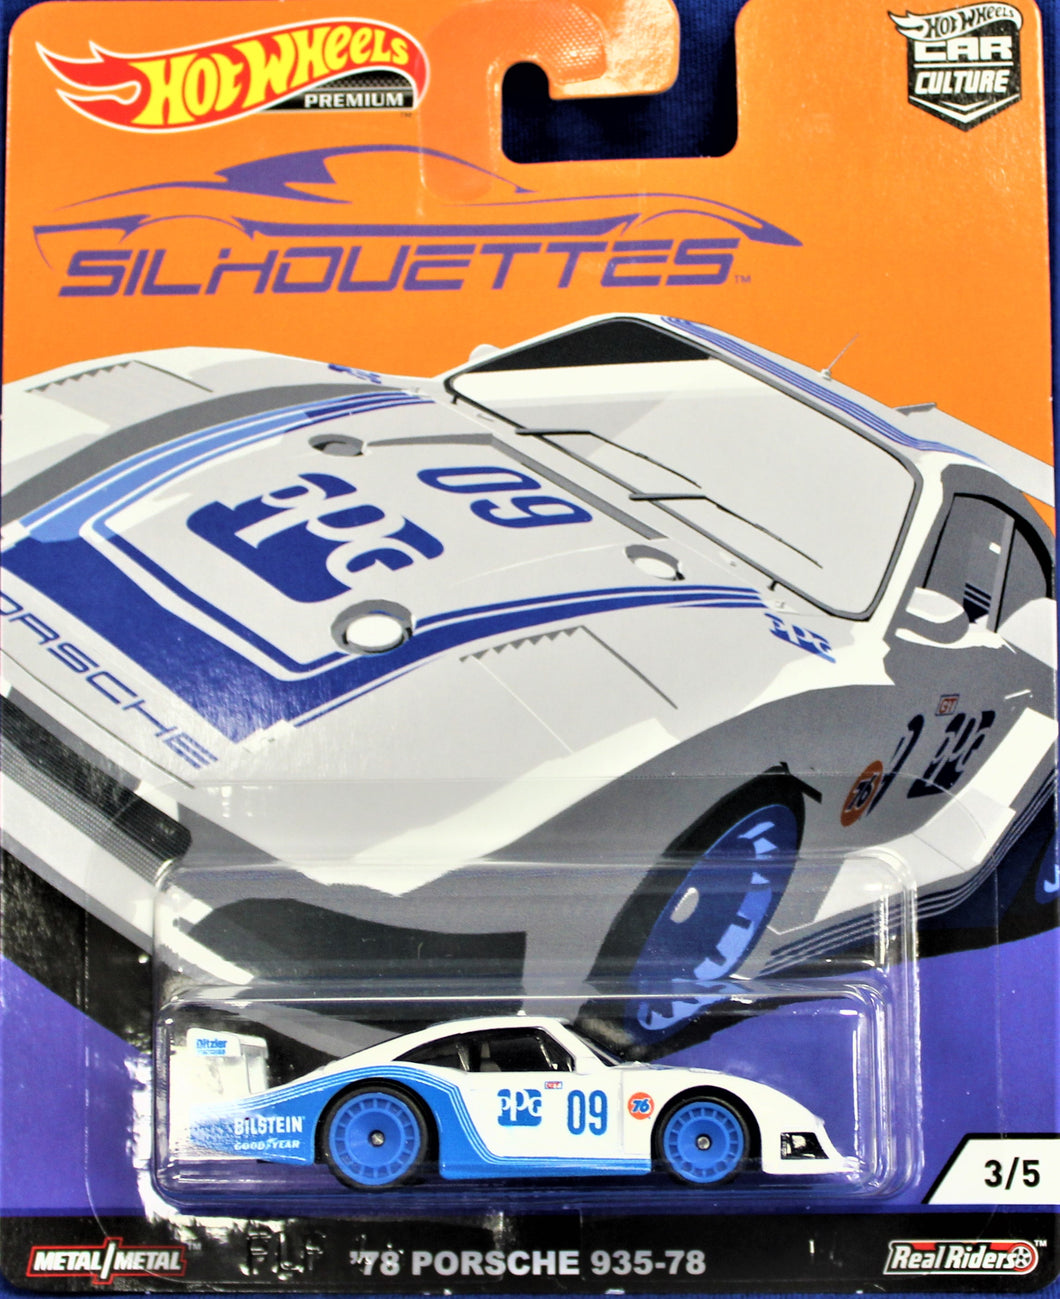 Hot Wheels '78 Porsche 935-78 (blue and white)